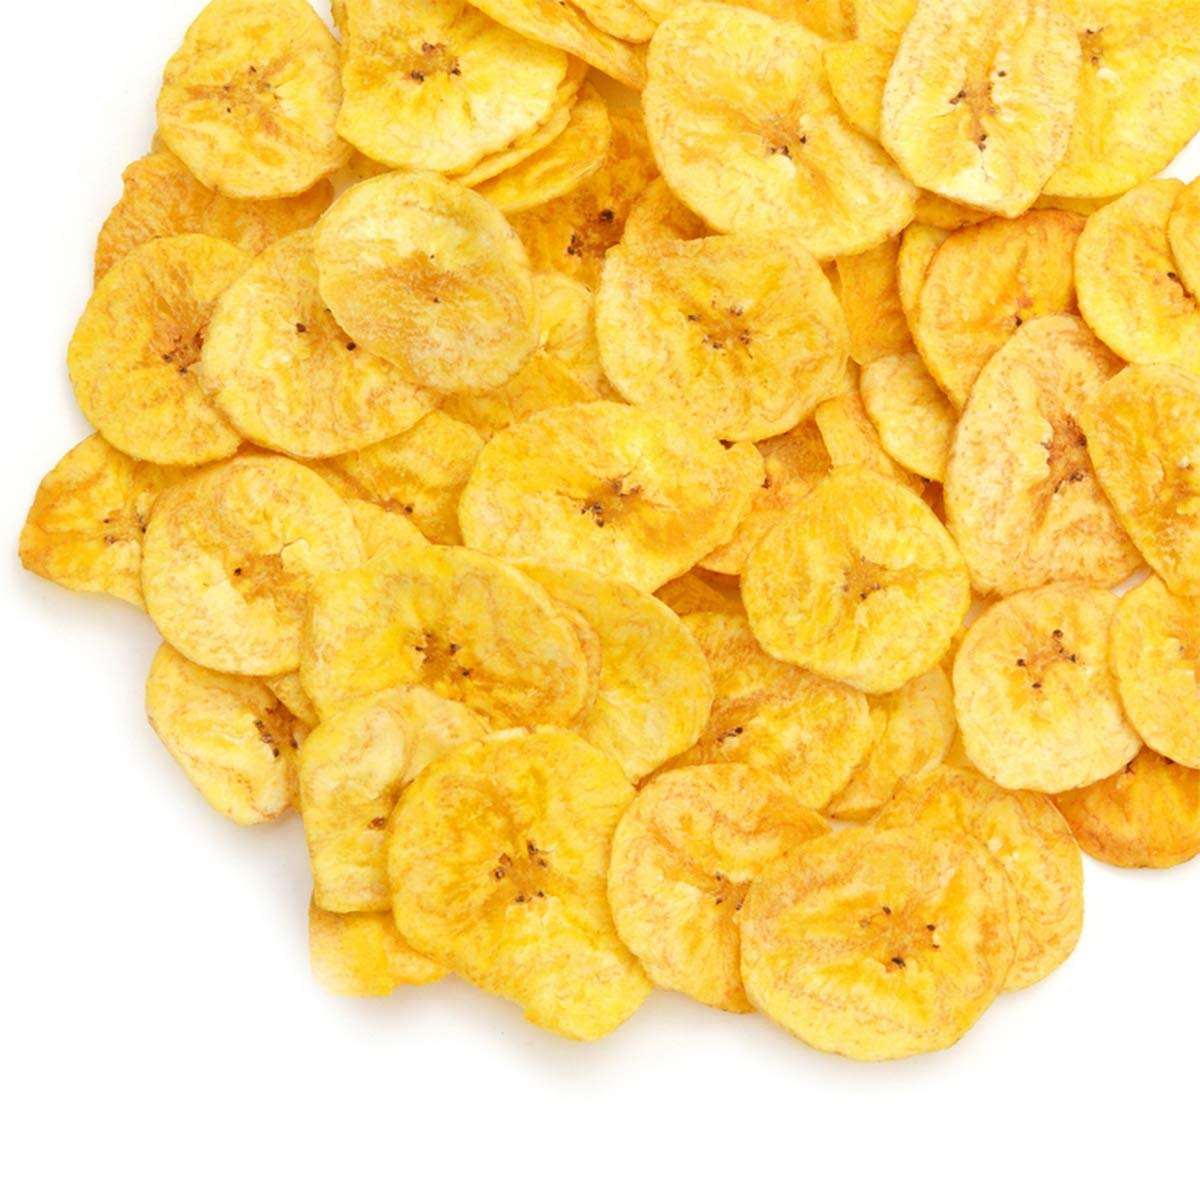 Banana Chips with Cinnamon Touch and Mango Chips with Pepper Best Quality at Wholesale